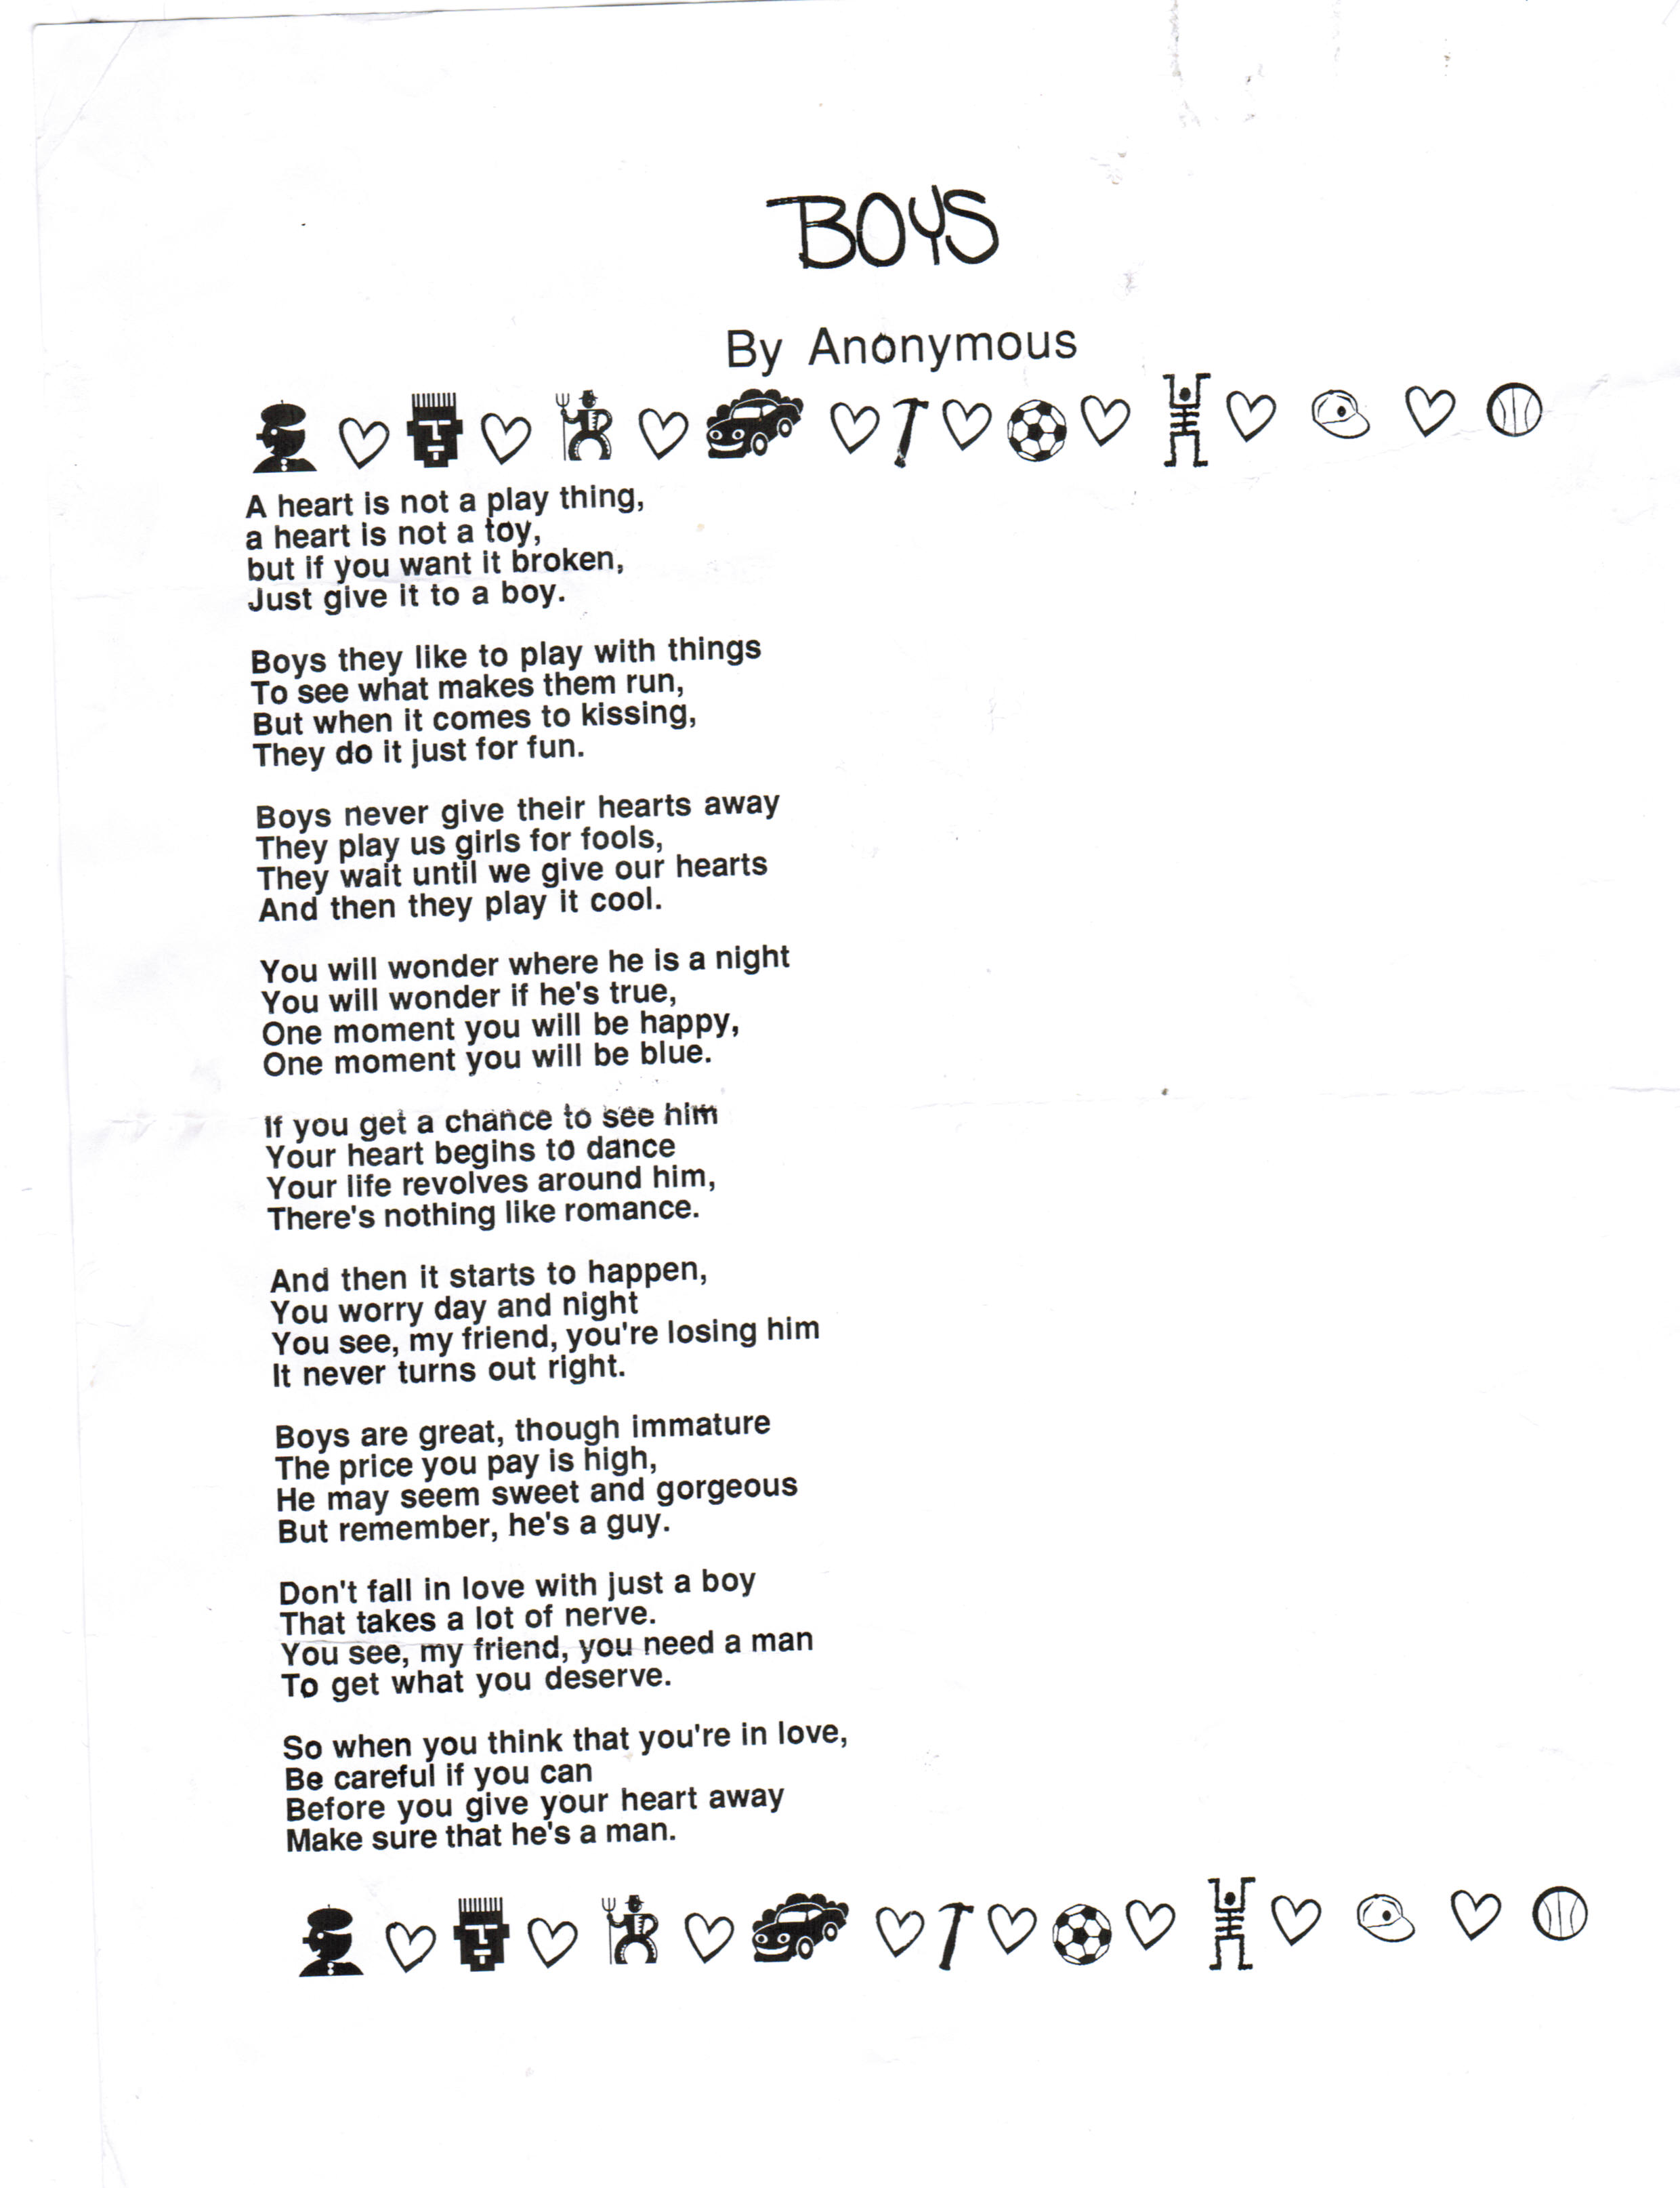 Poems About Gender 5